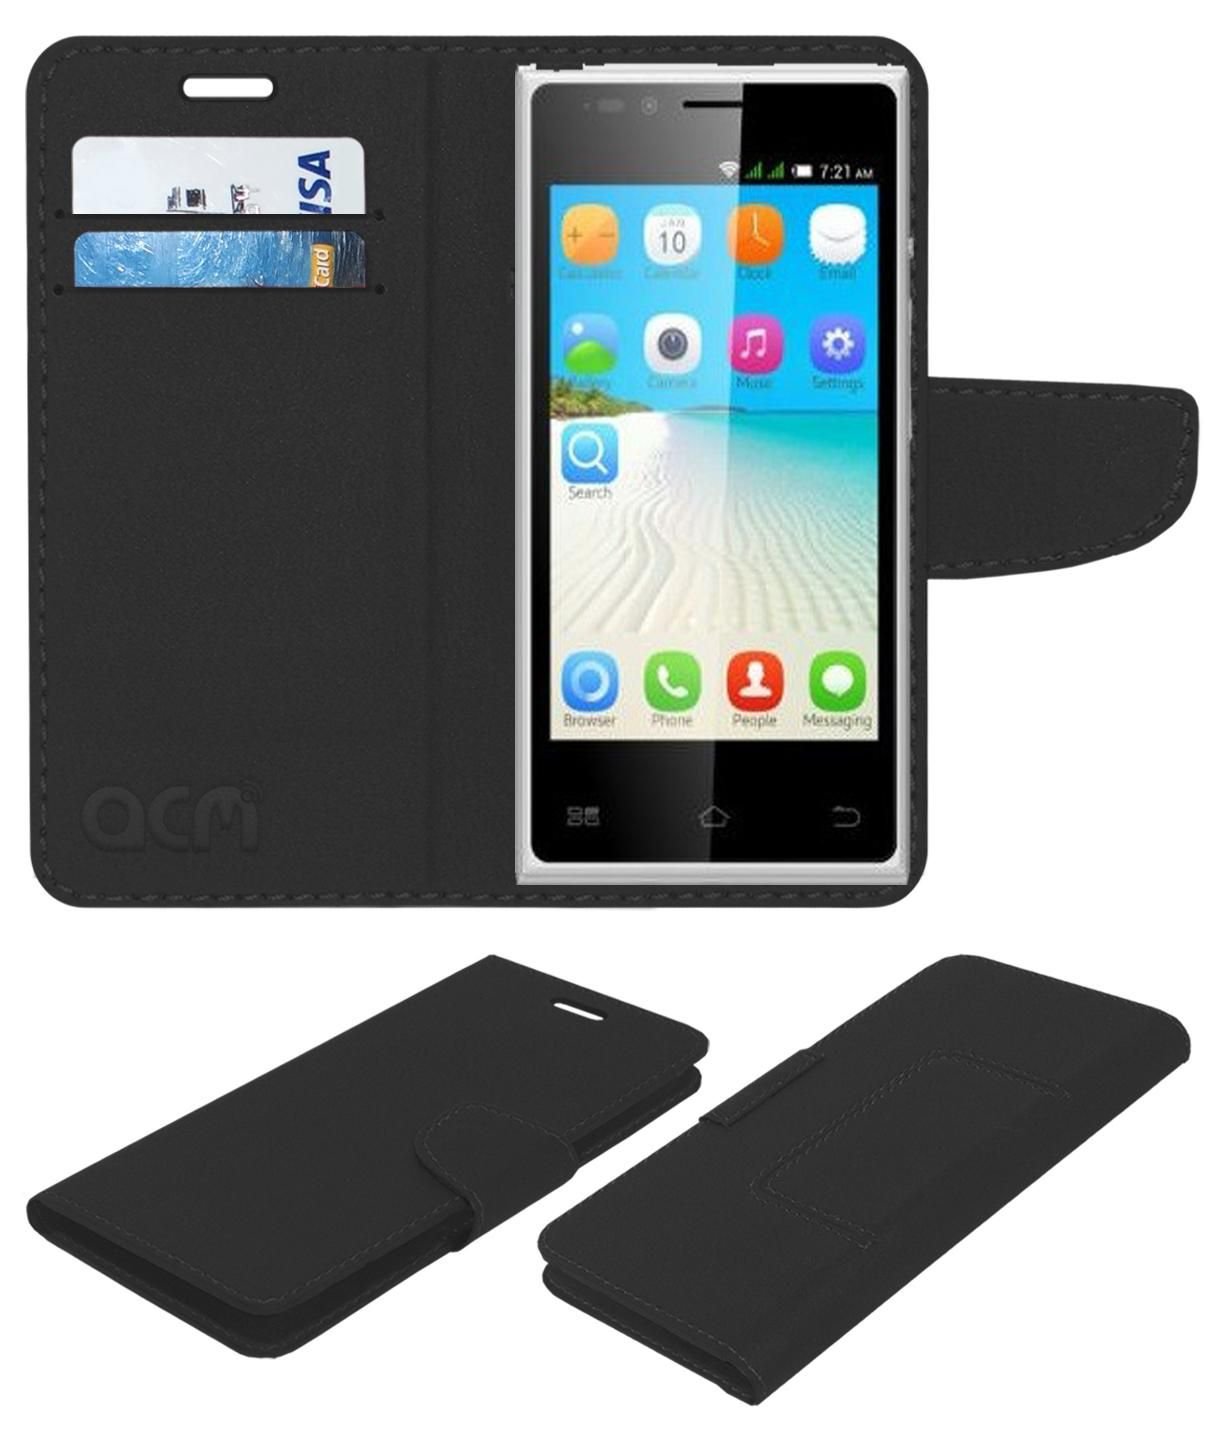 Bq E2 Flip Cover by ACM - Black